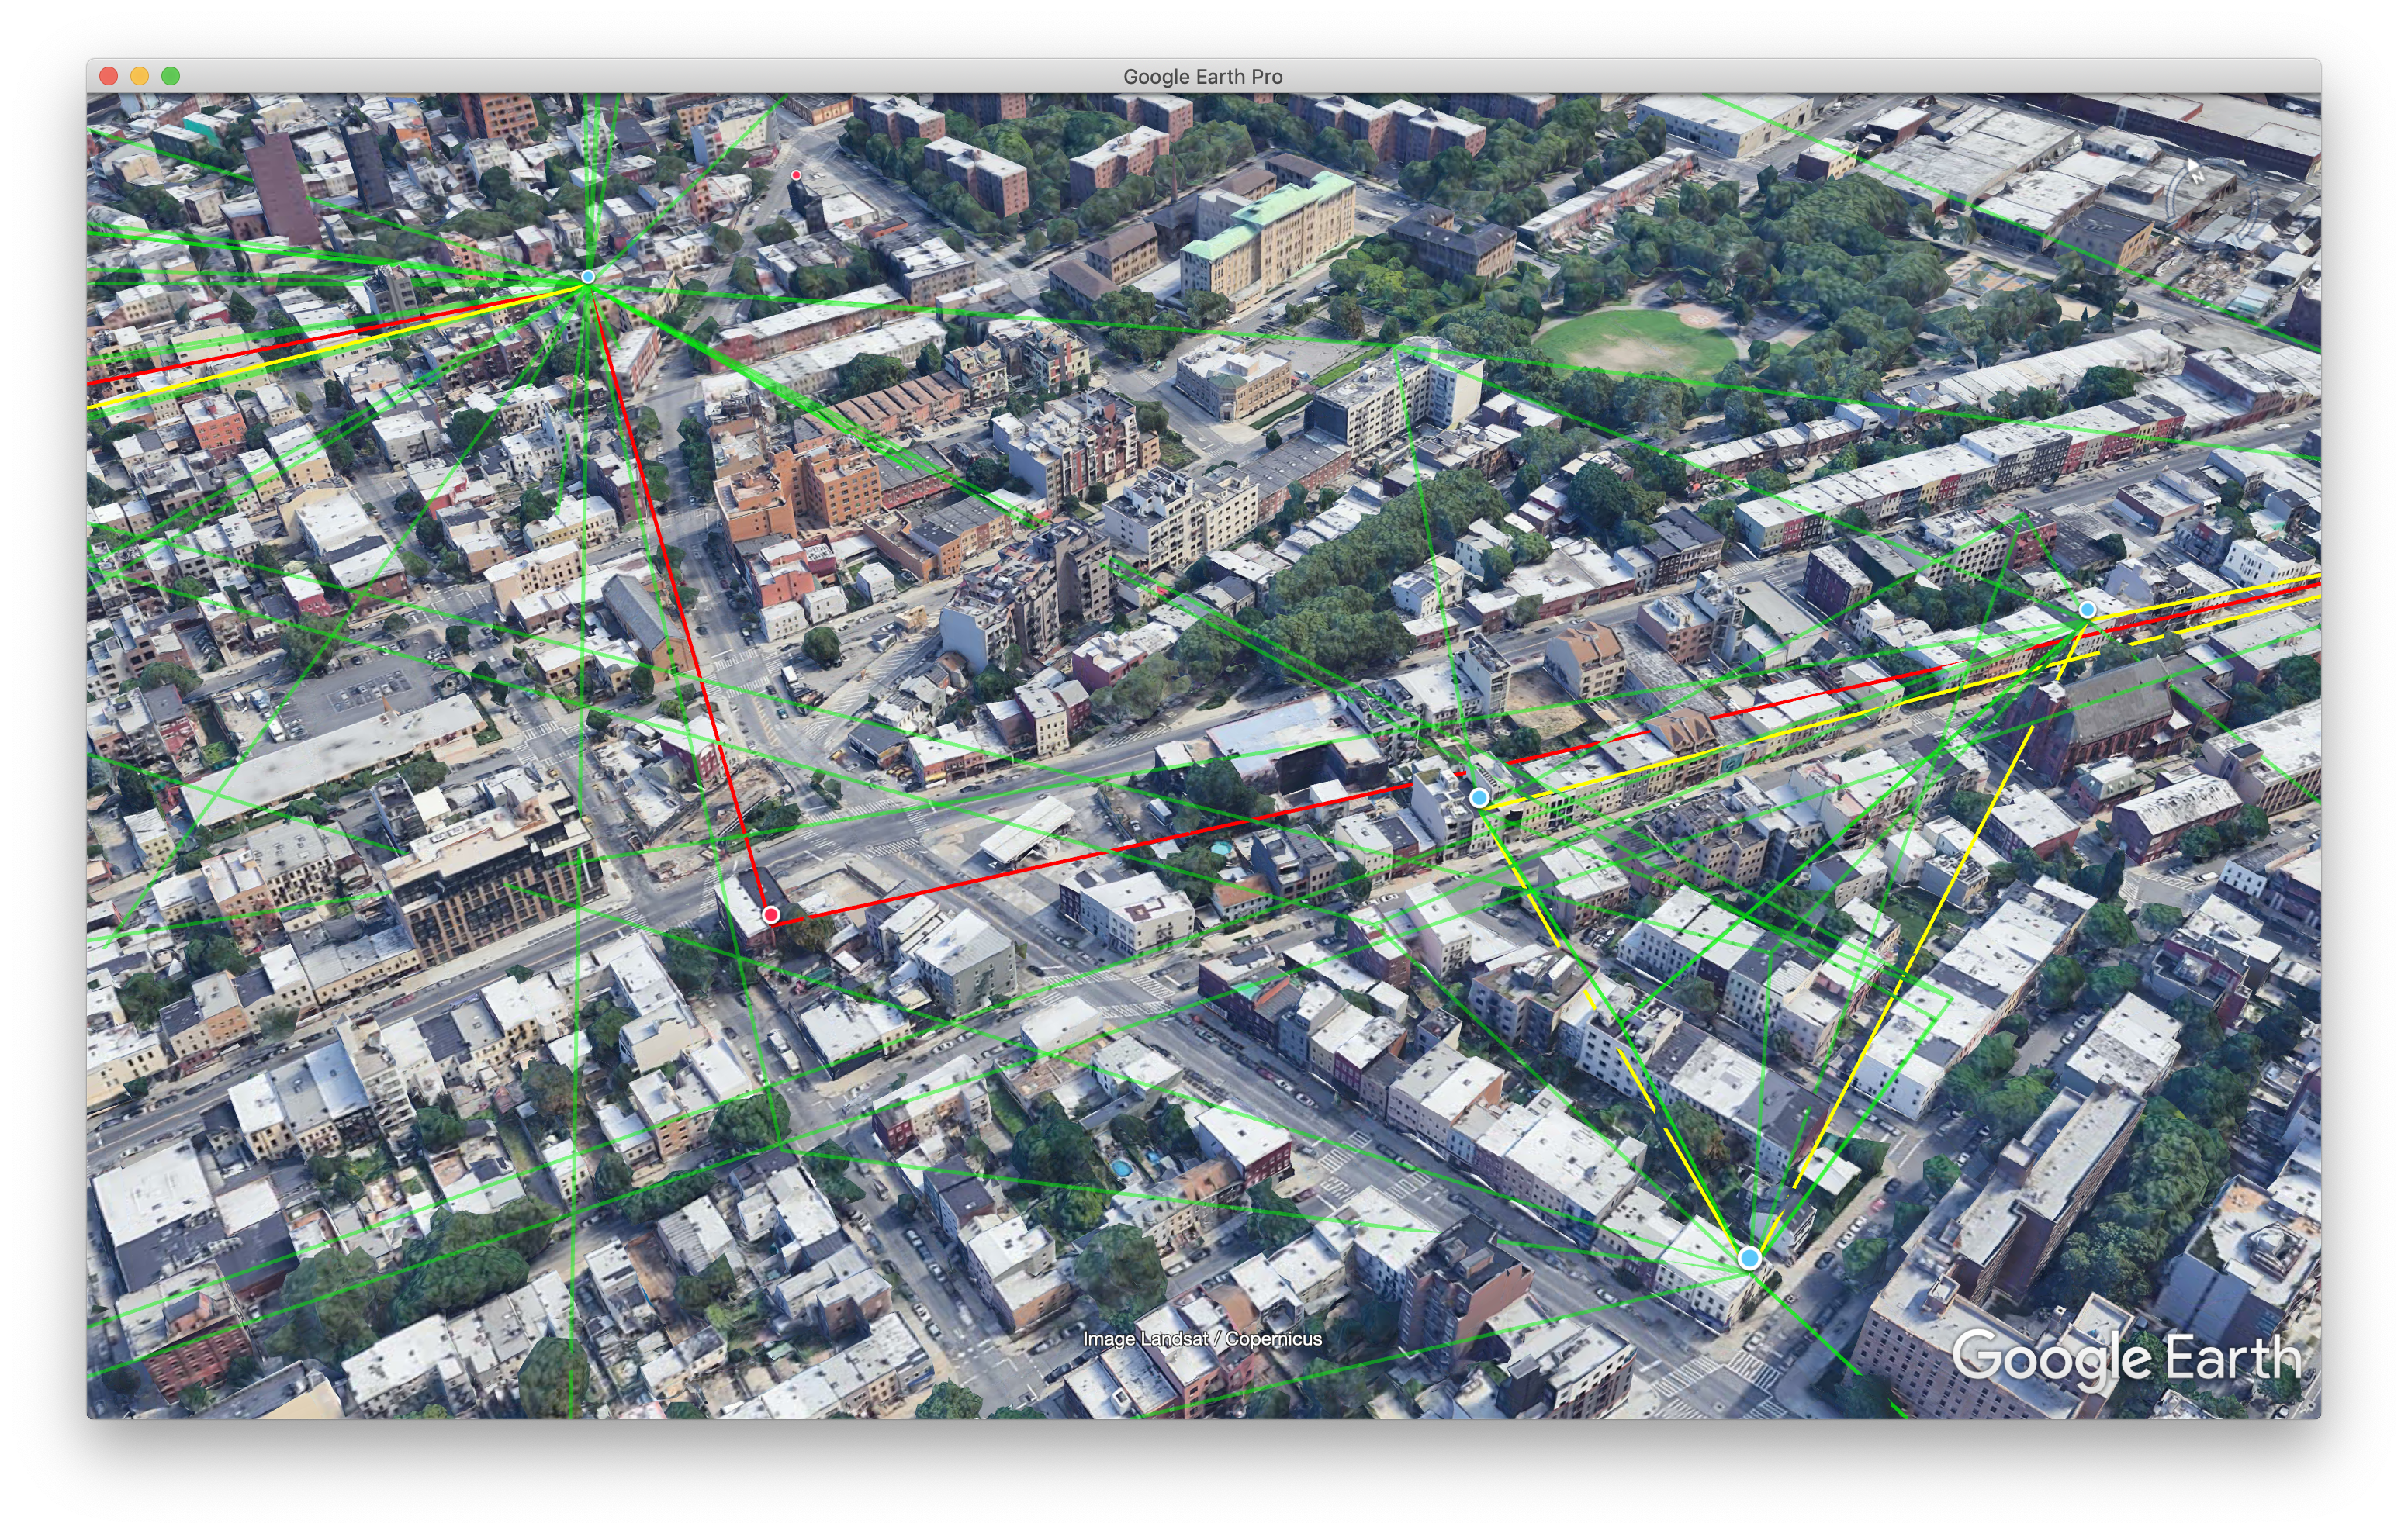 Screenshot of Google Earth showing data from Mesh API. There are blue dots showing nodes on buildings and green and yellow lines showing links between nodes.